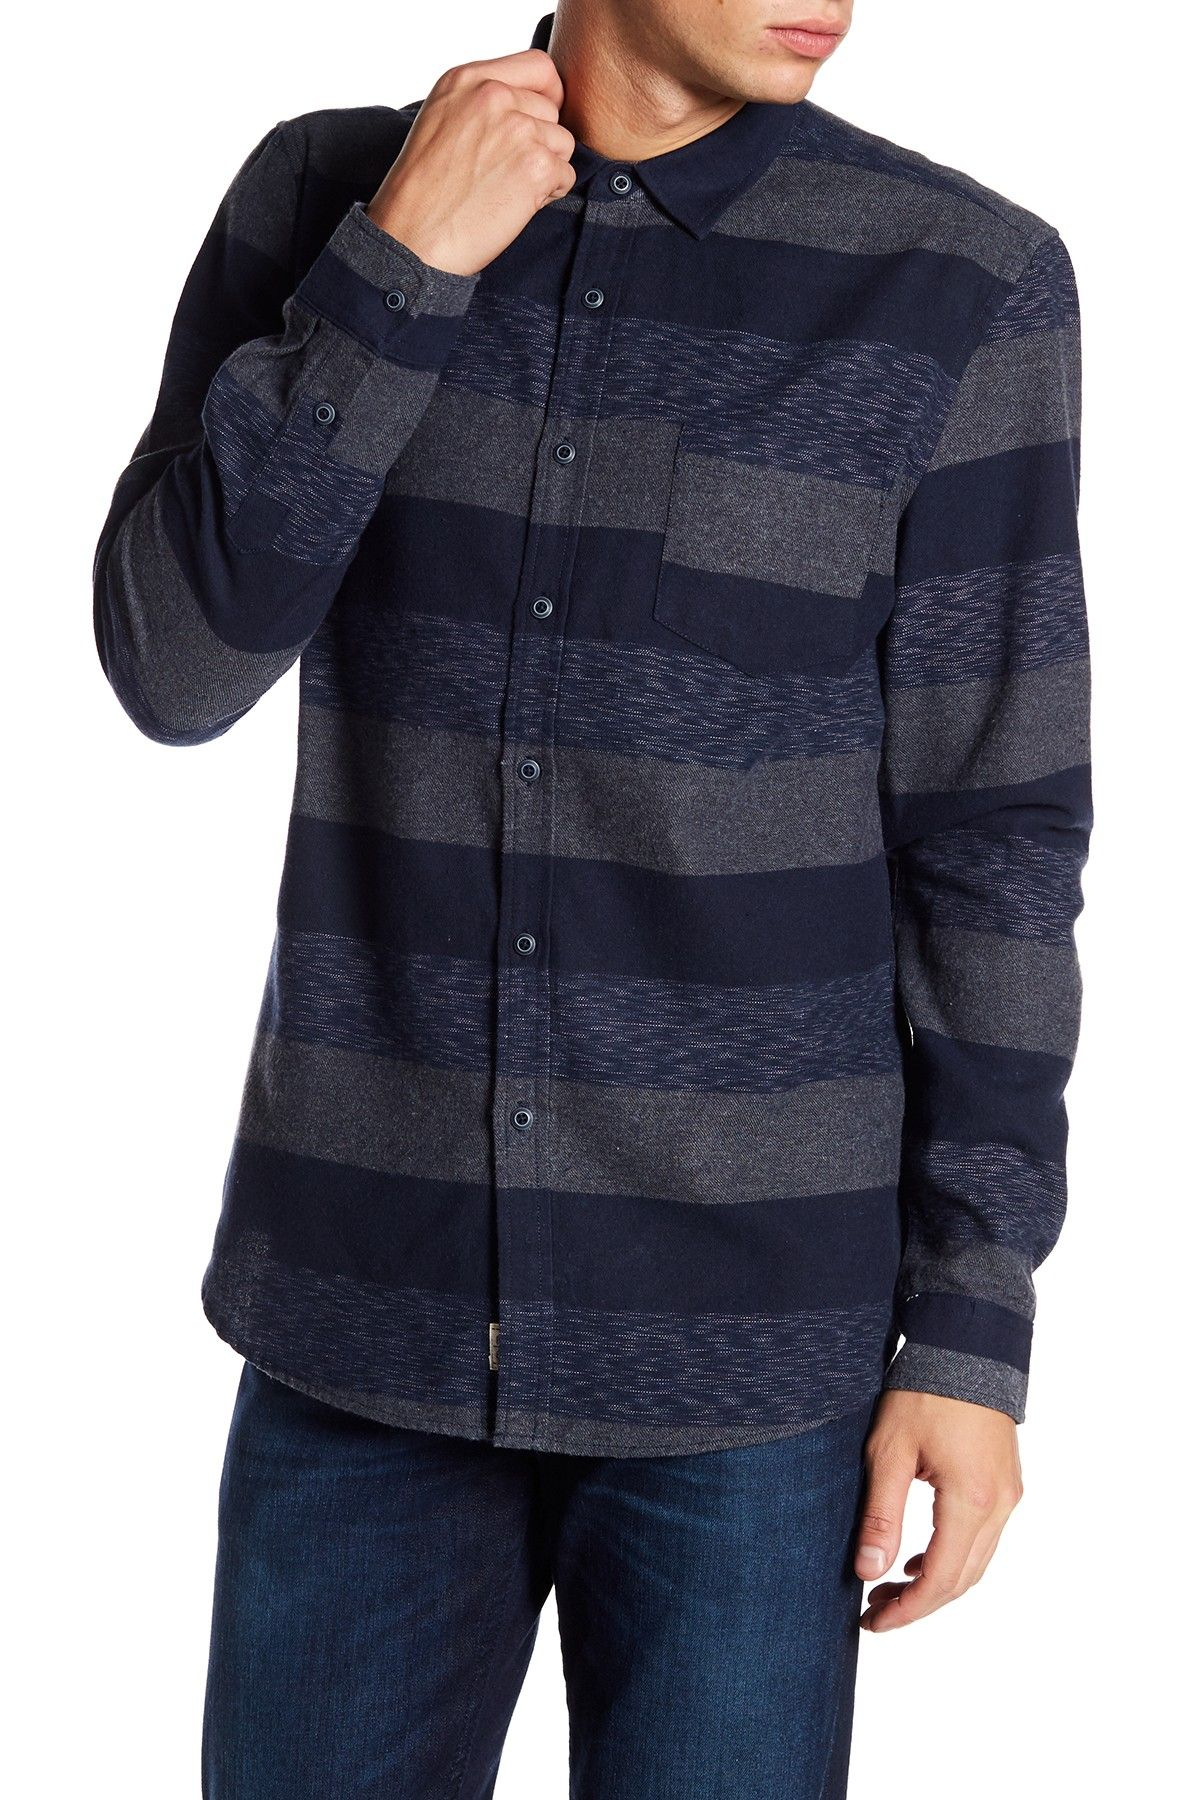 d2e5072f5d Micros Hunter Long Sleeve Regular Fit Woven Stripe Flannel Shirt ...